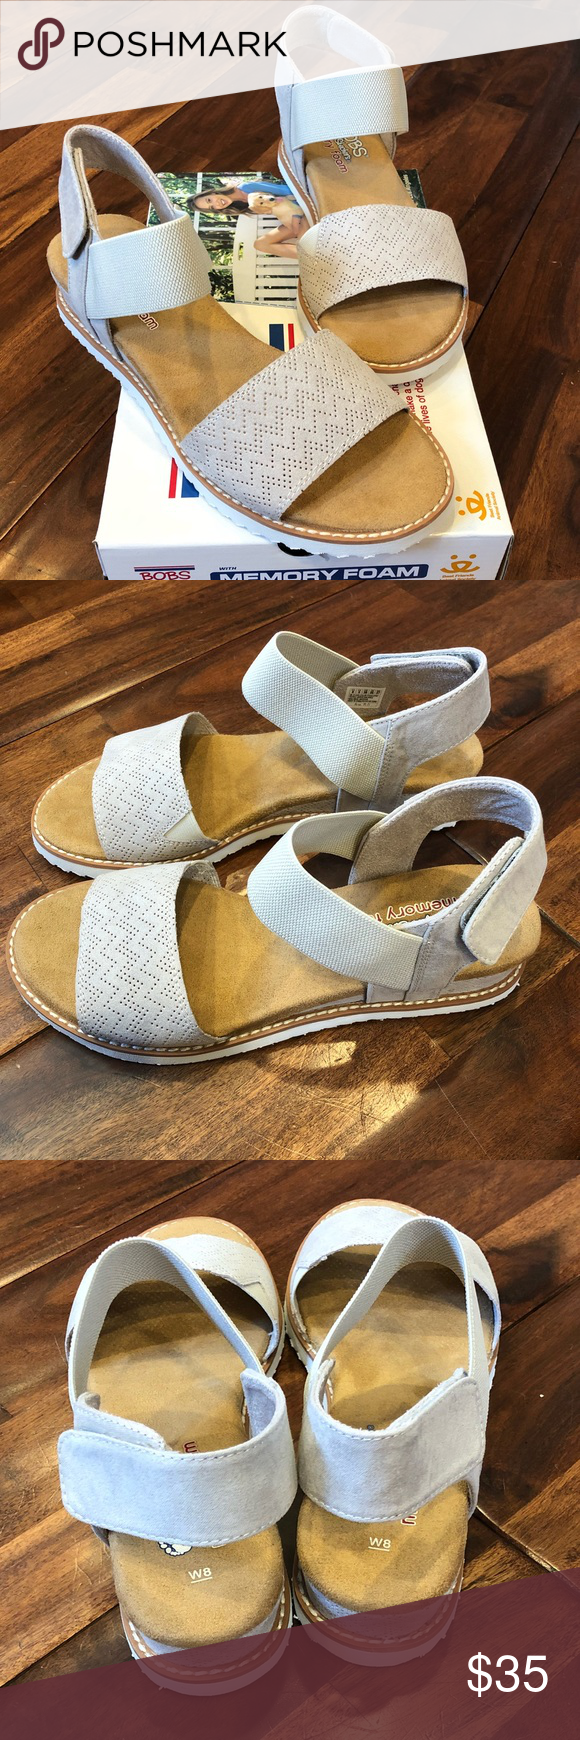 a96c2554ffa0 Skechers Bobs Off-White Sandals BOBS for Skechers sandals in Desert Kiss.  Velcro back make it easy to adjust size for comfortable fit.